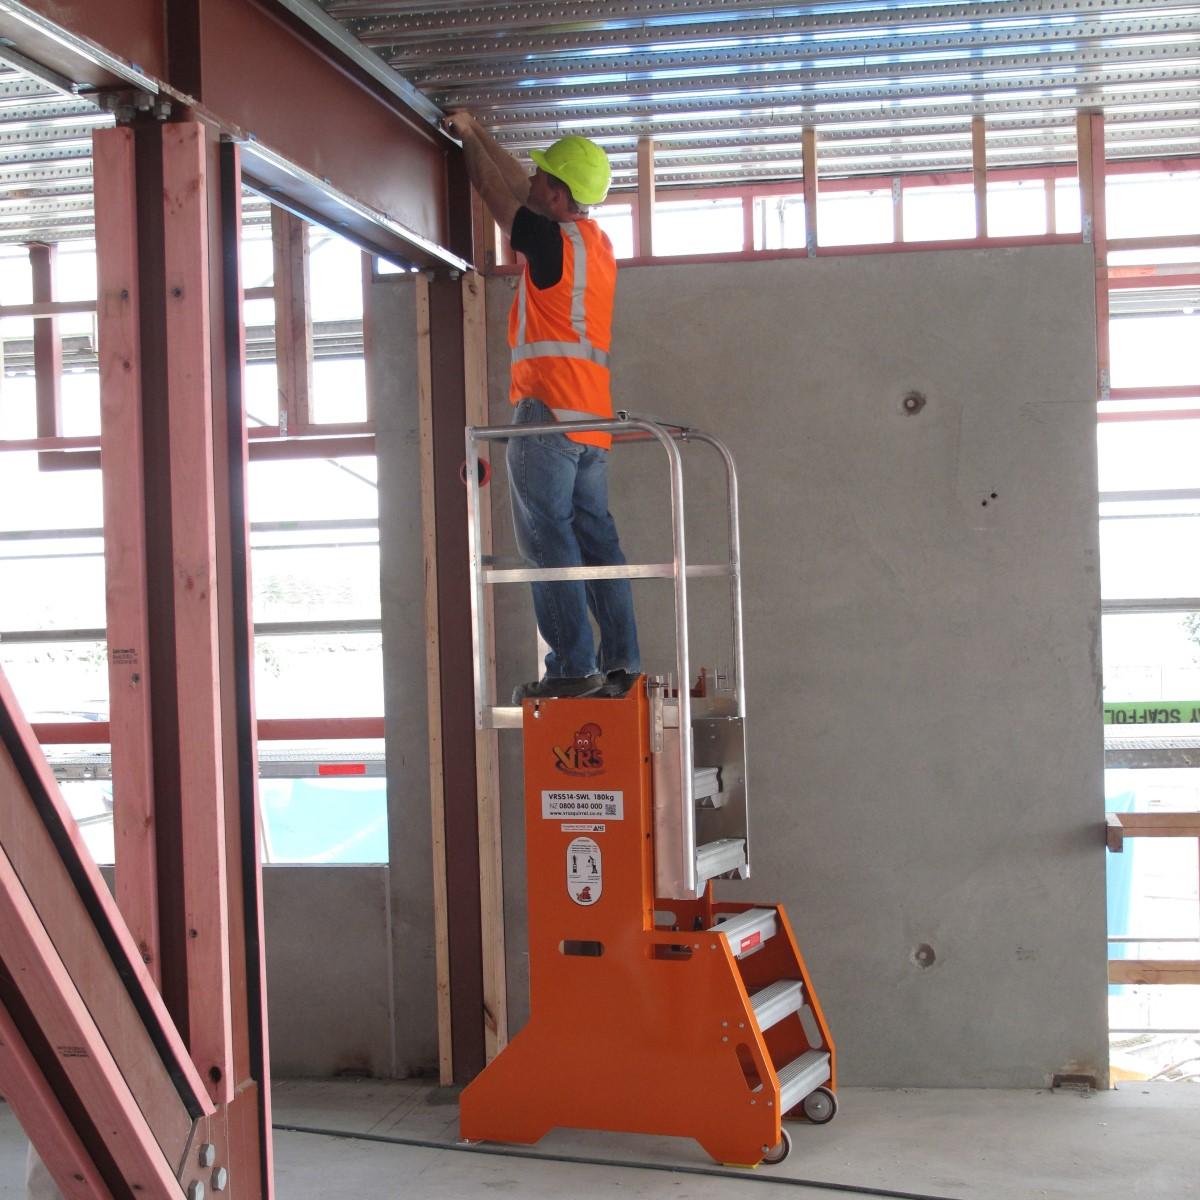 man standing on Equiptec squirrel mobile work platform at construction site